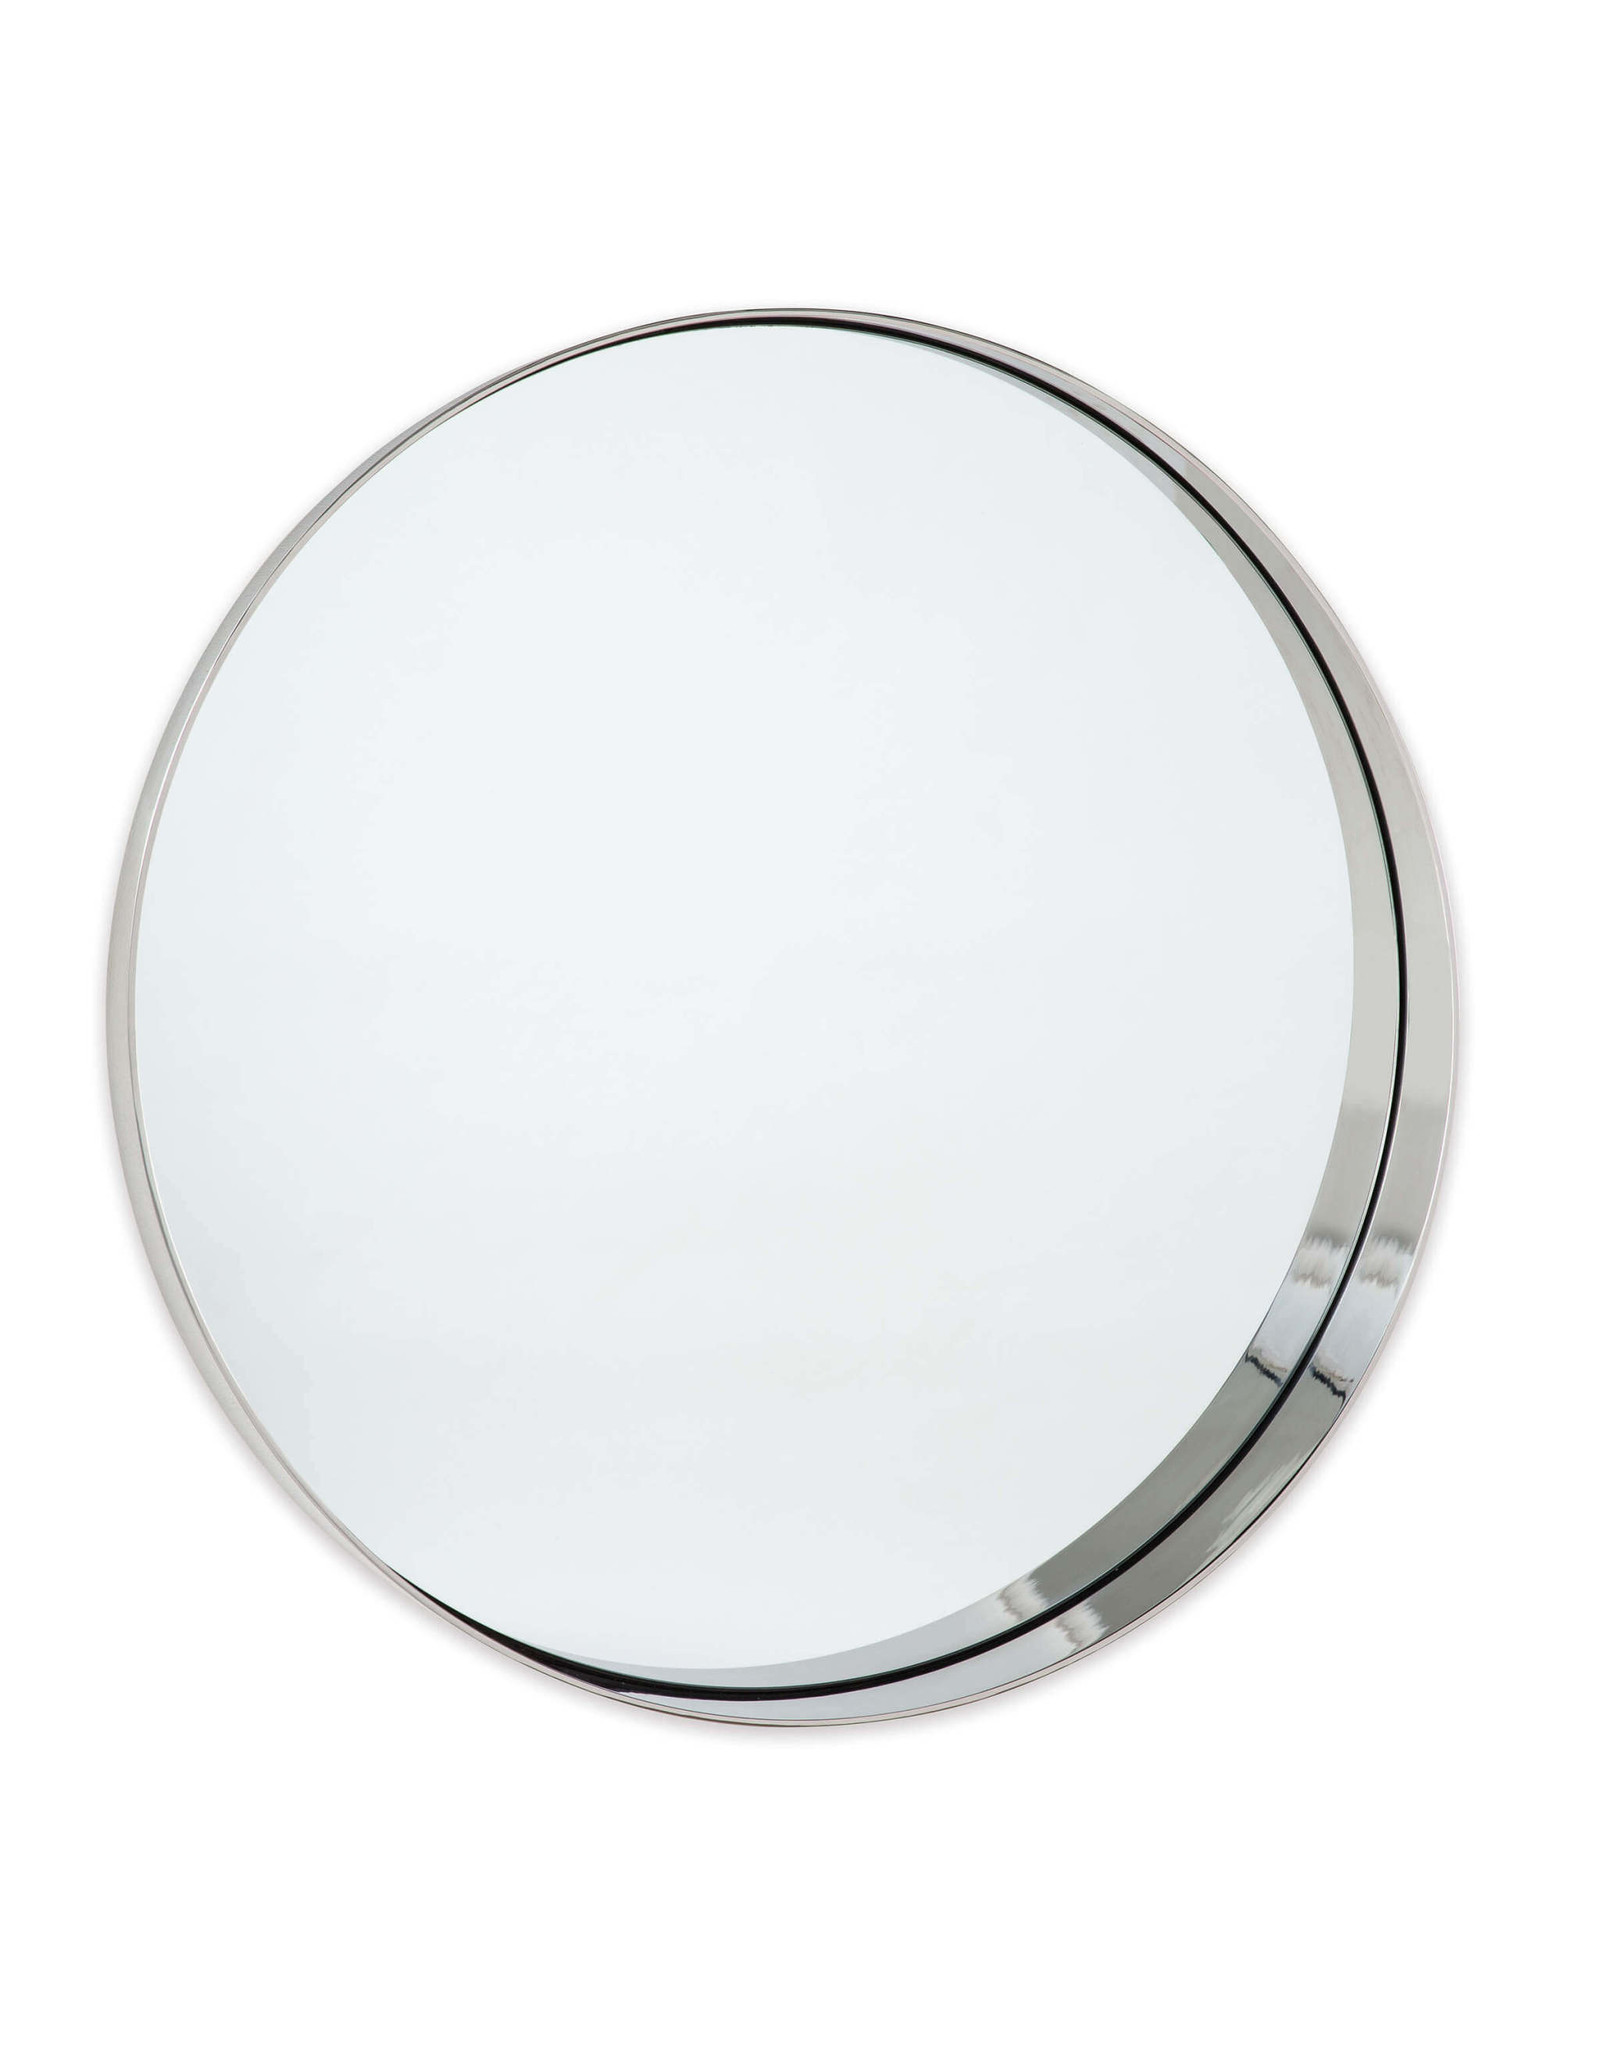 Regina Andrew Design Gunner Mirror -  Polished Nickel